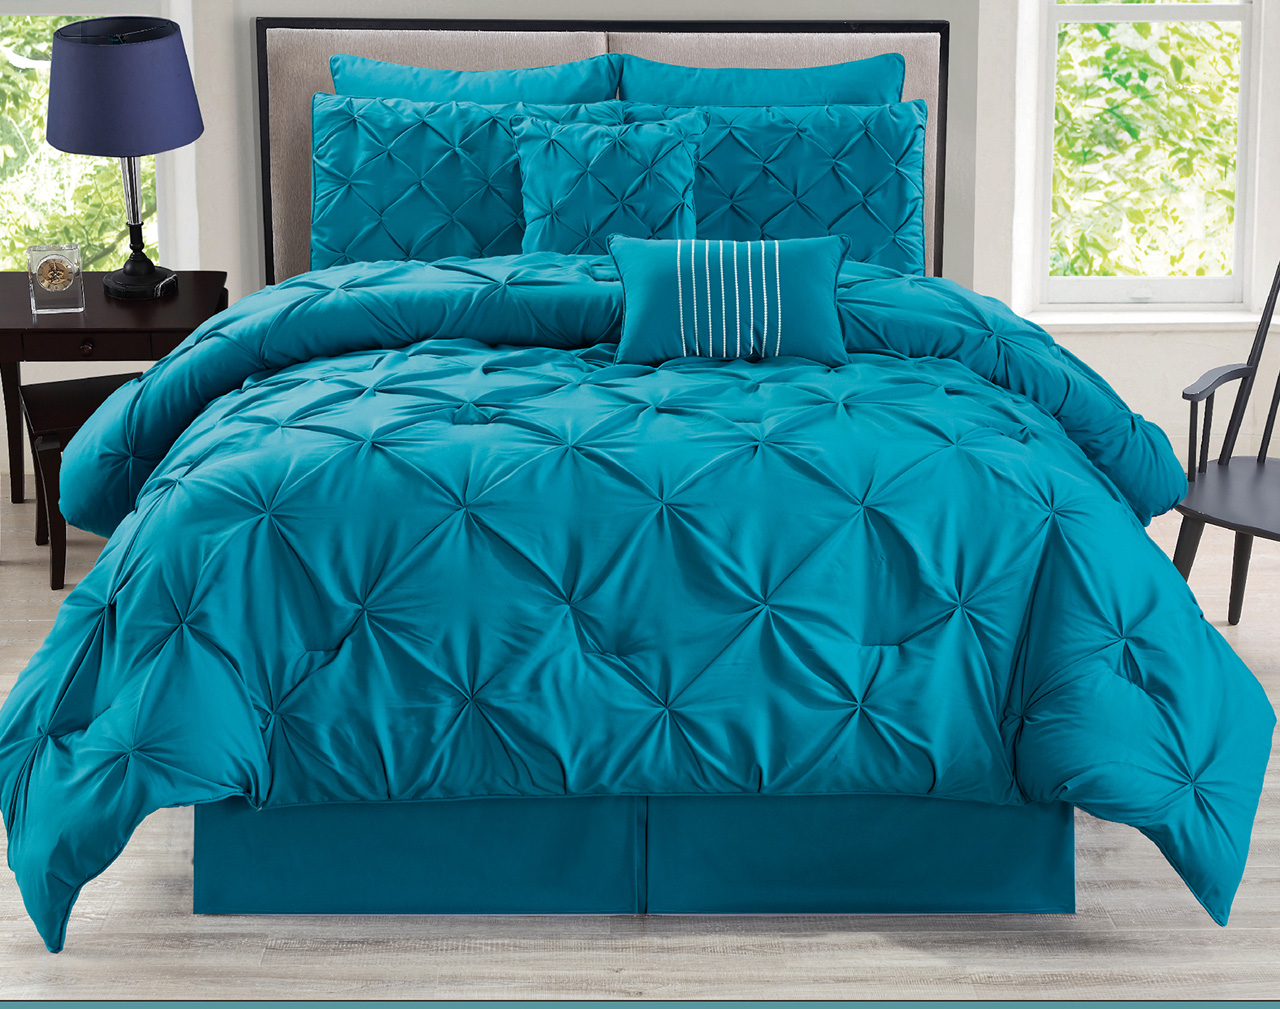 amazon set bedding floral queen hypoallergenic cover duvet teal com microfiber thread dp nanko pieces